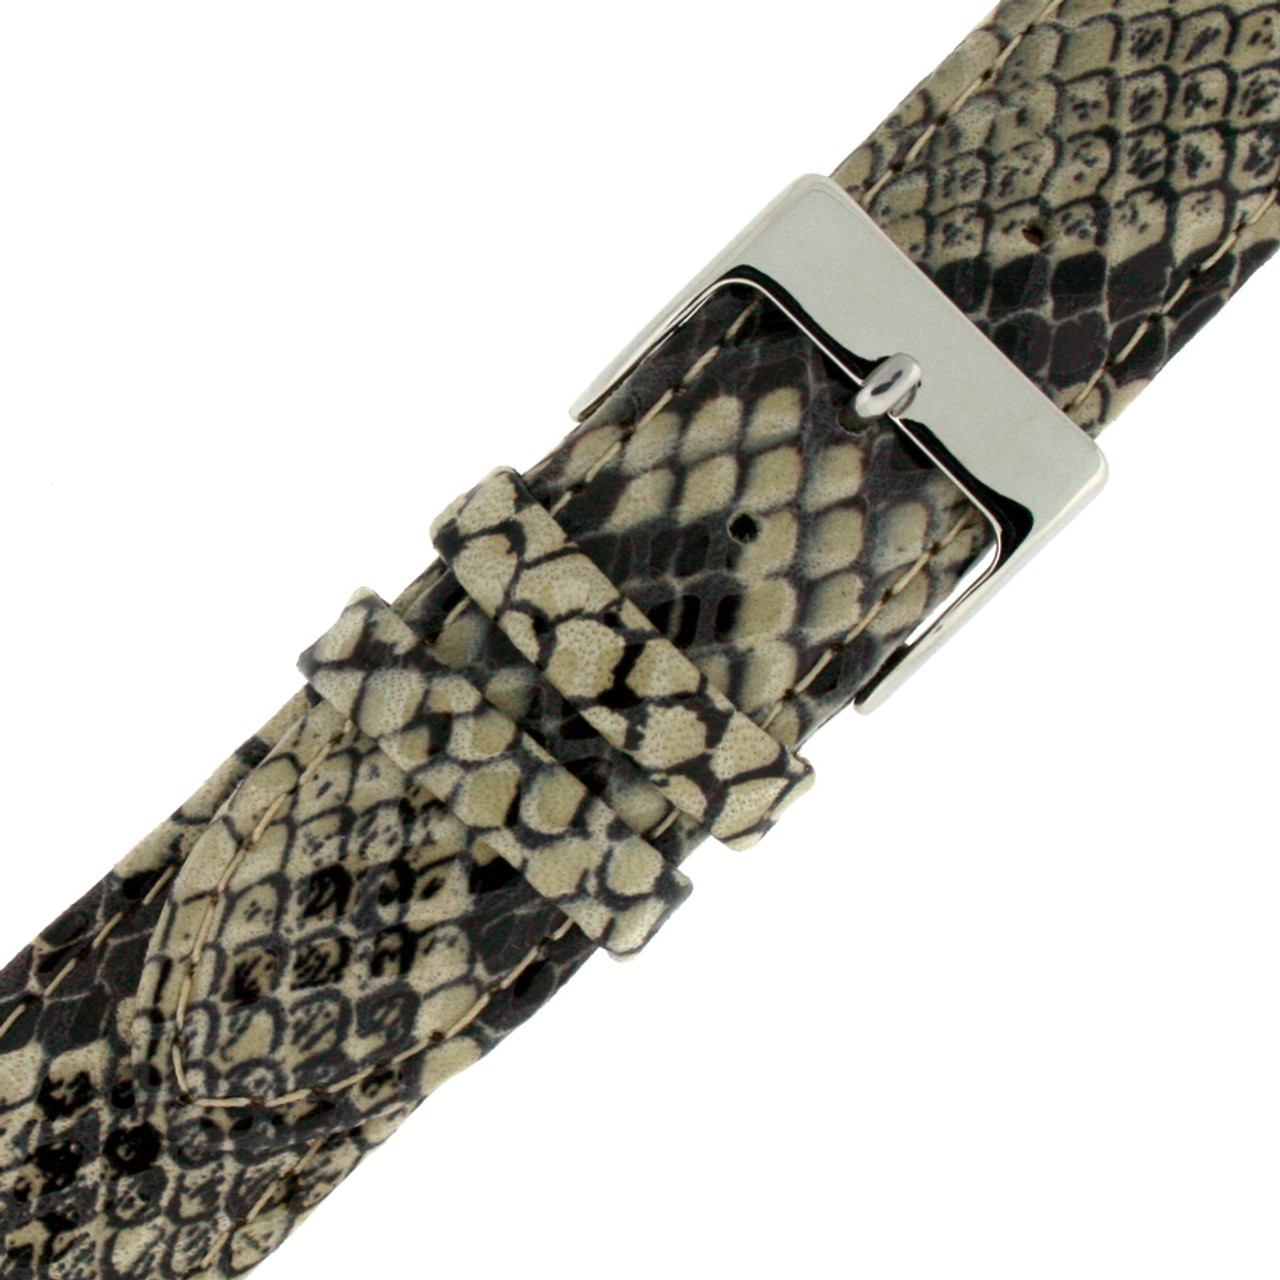 Watch Band in Cream Snake Print - Buckle View